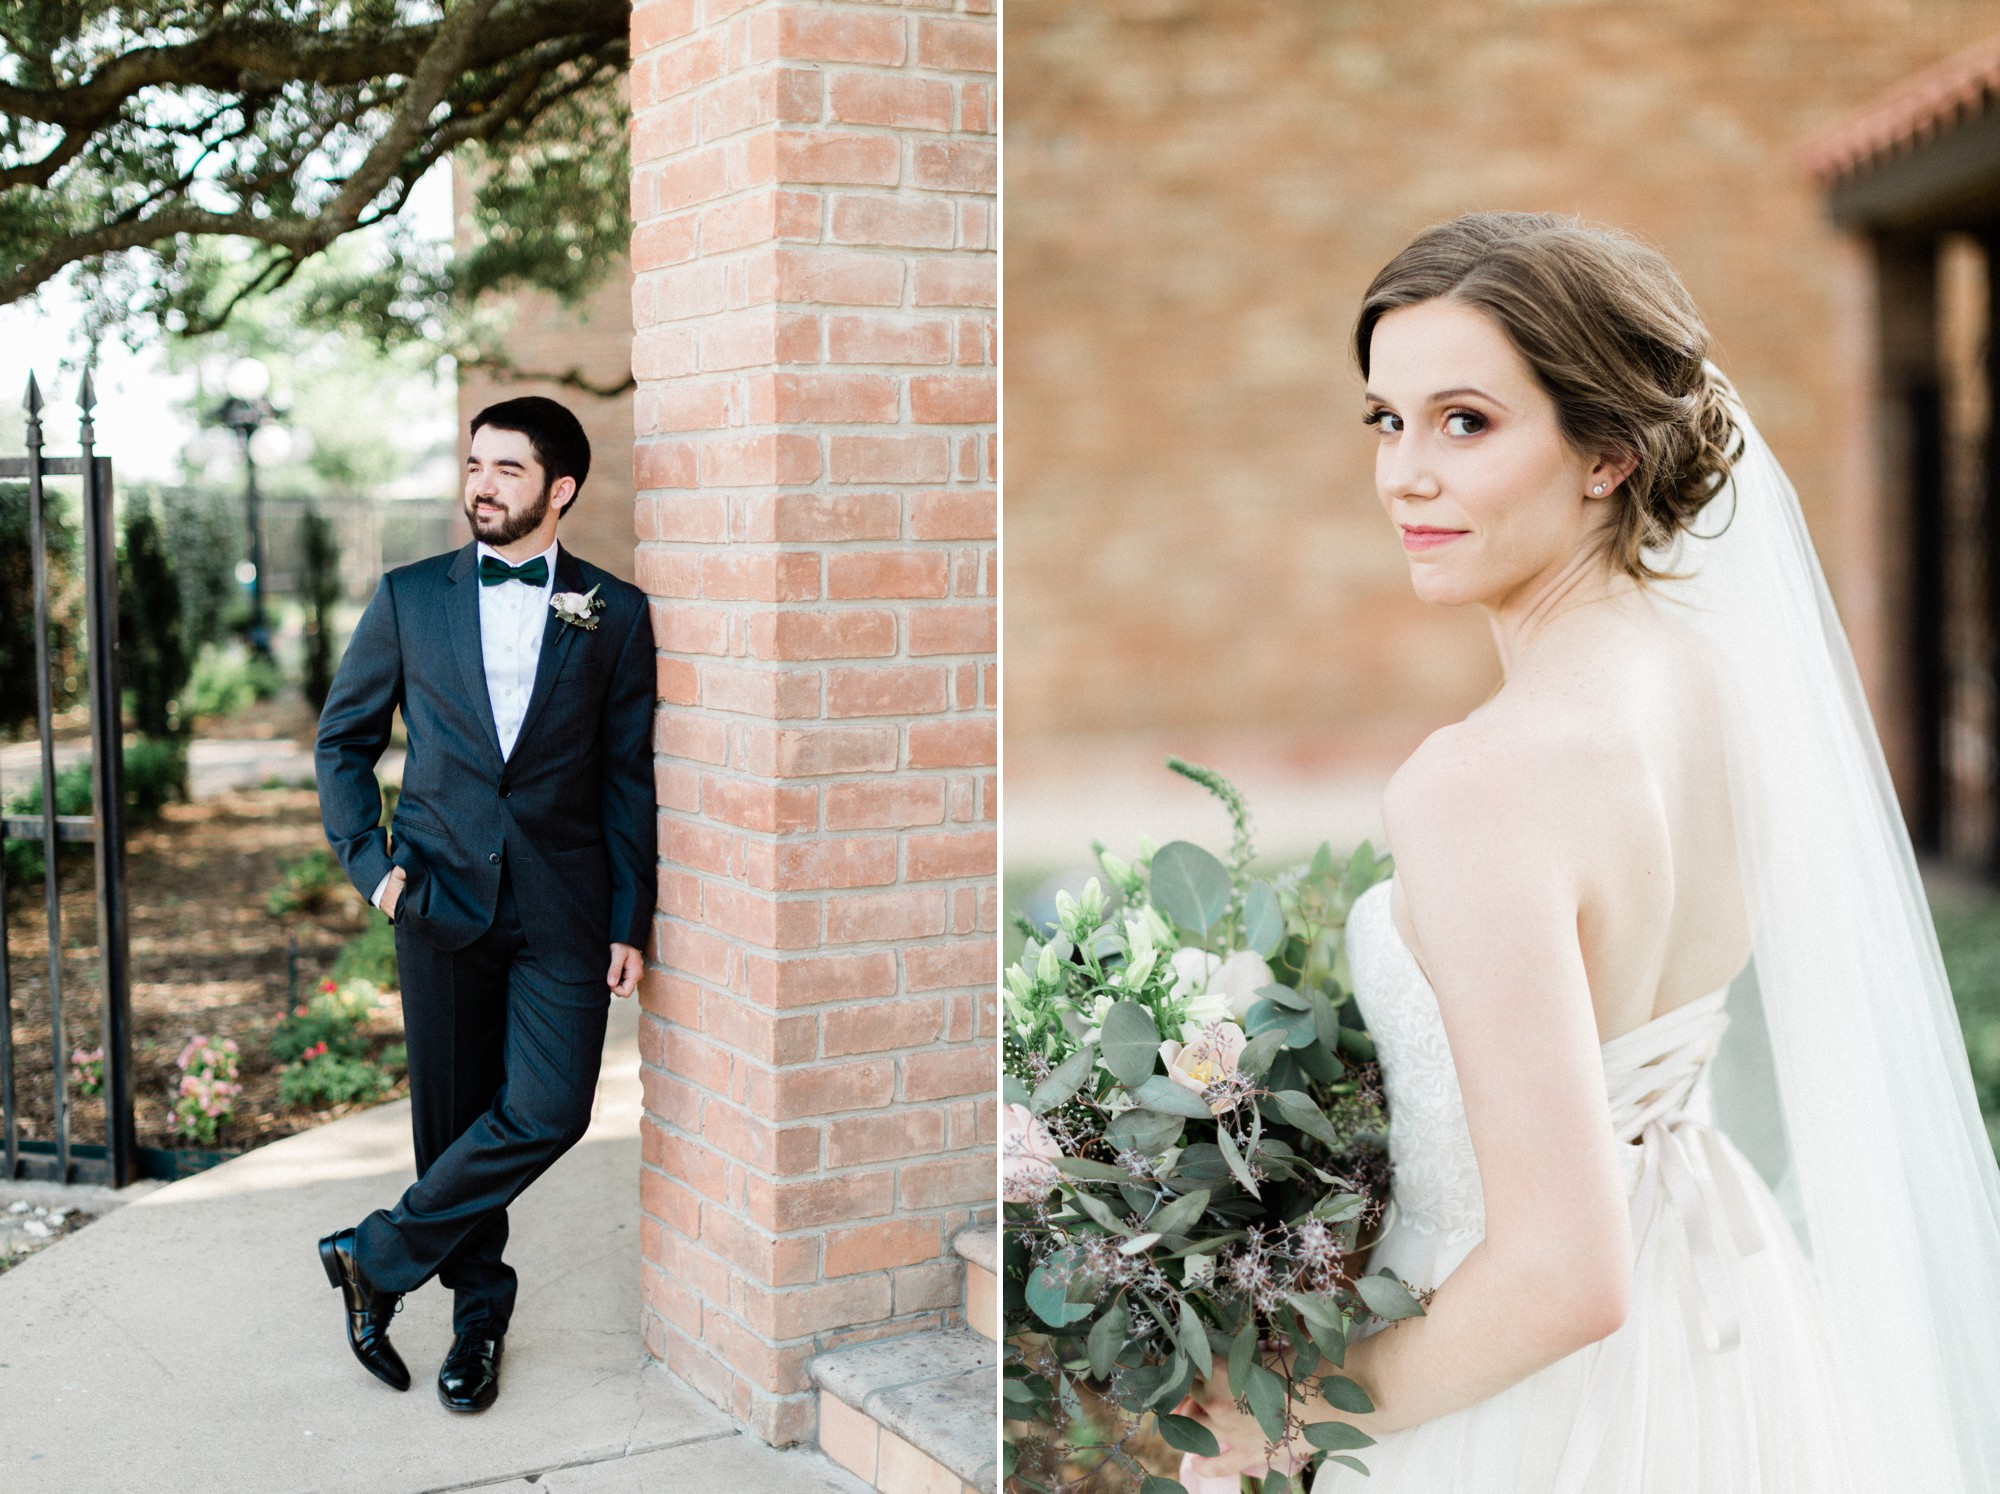 groom, black tux, bride, bhldn dress, poison ivy floral design, spring wedding photo, the gallery, houston, texas, dreamy elk photography and design